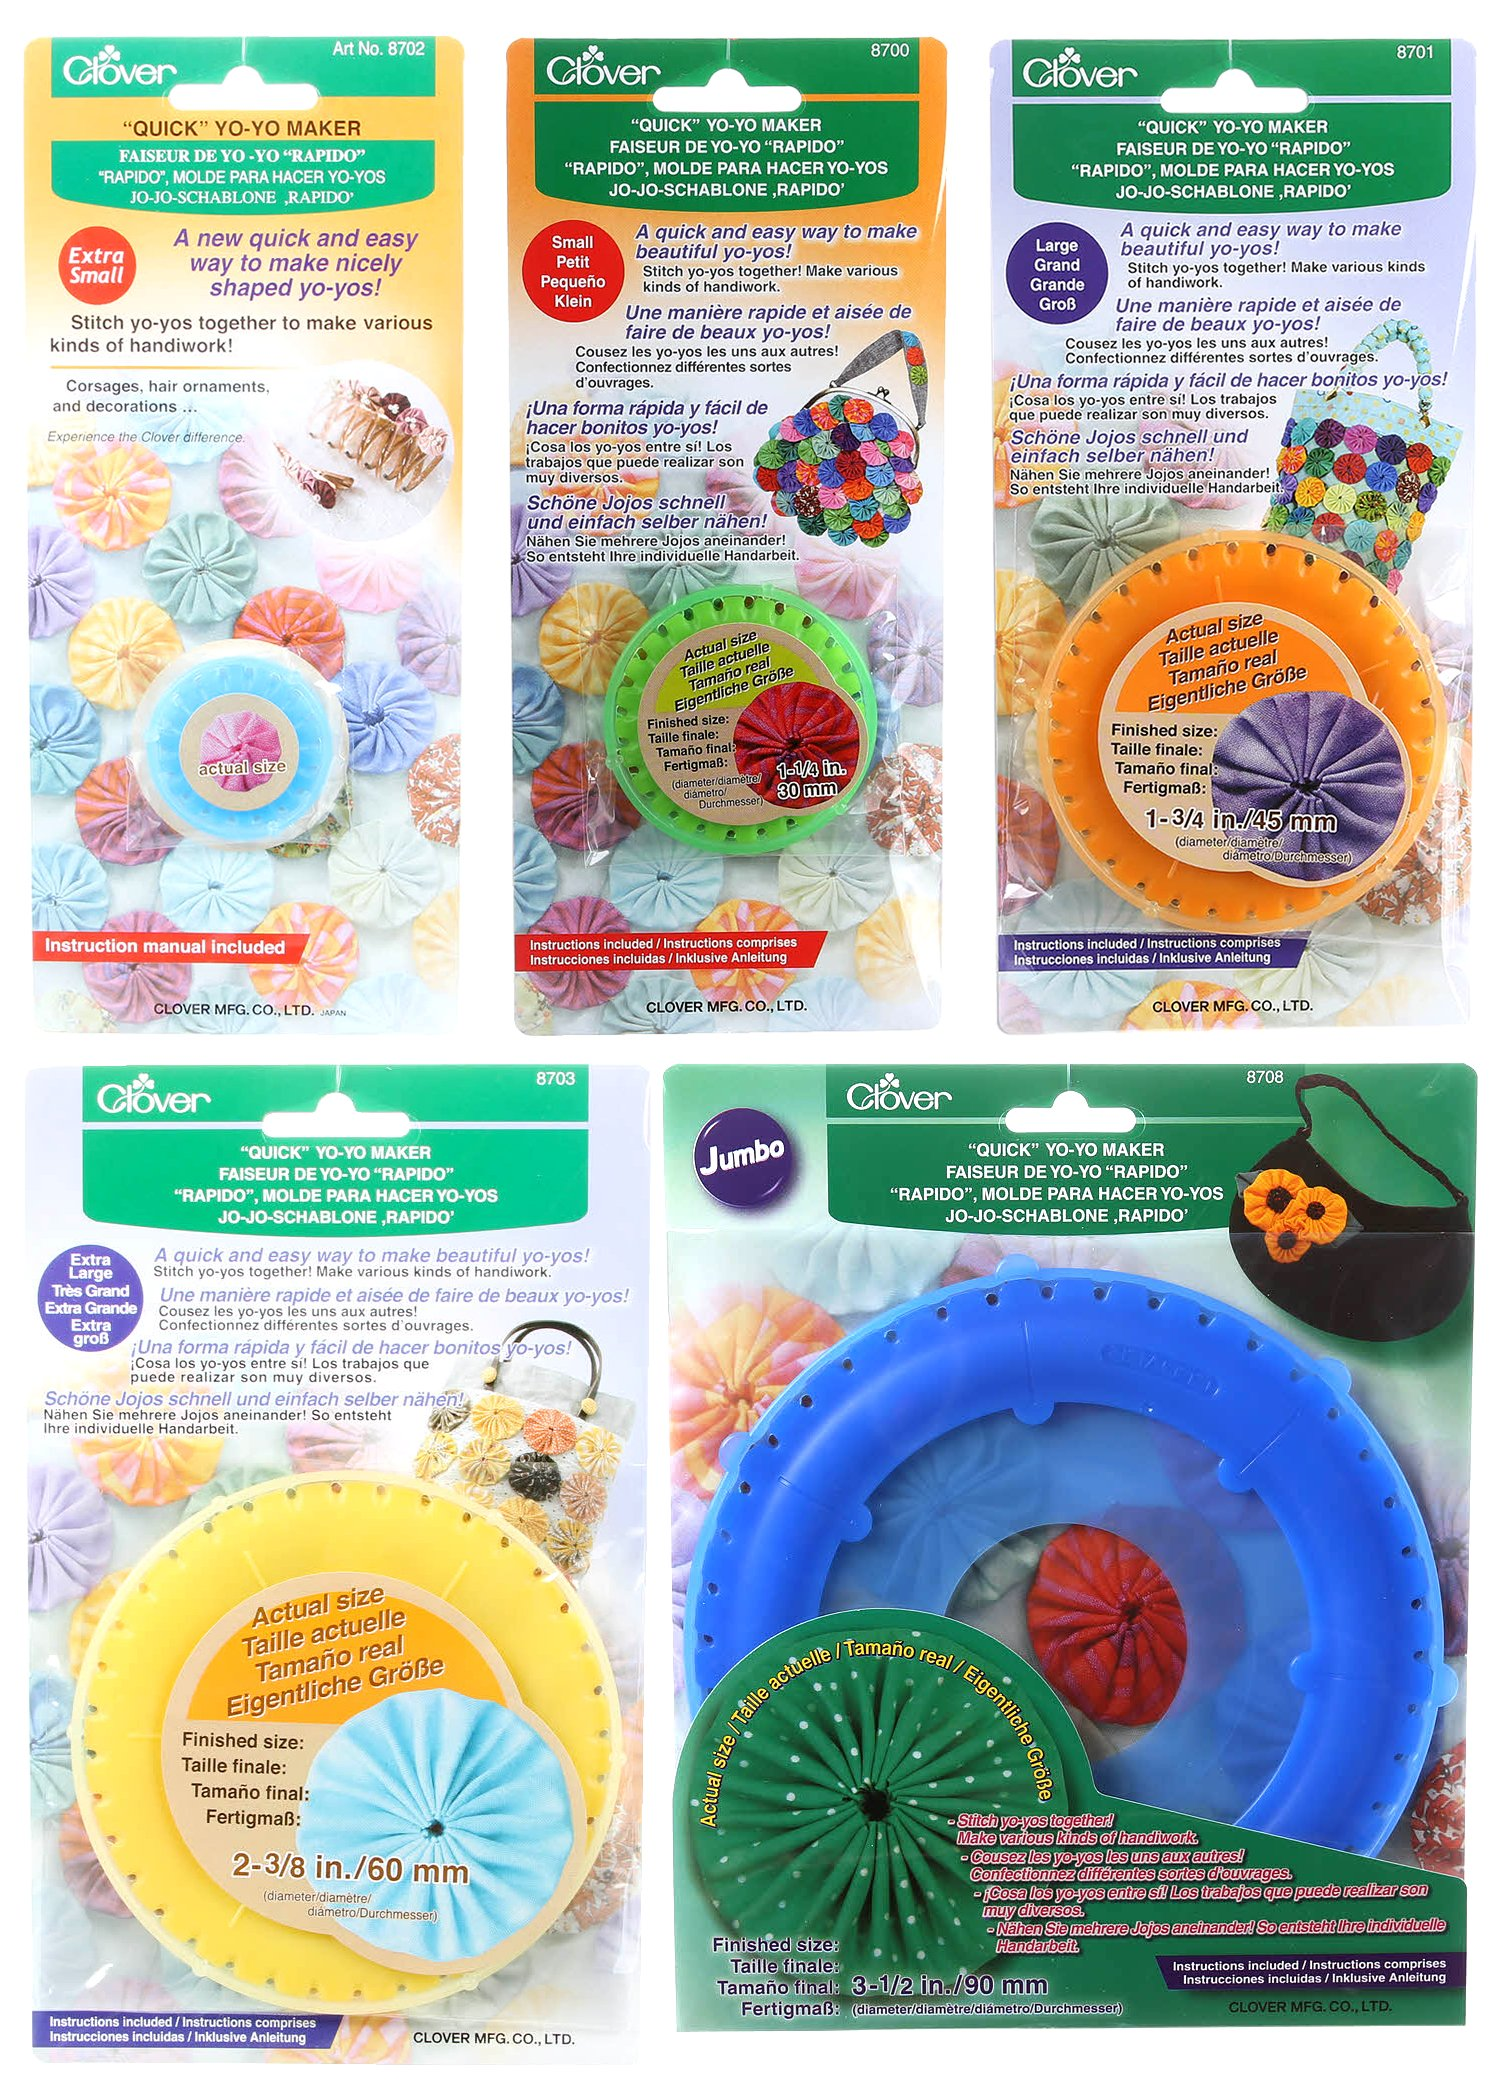 Bundle of Five (5) Quick Yo-Yo Makers: Extra Small (makes 3/4'' yo-yos), Small (makes 1.25'' yo-yos), Large (makes 1.75'' yo-yos), Extra Large (makes 2-3/8'' yo-yos), and Jumbo (makes 3.5'' yo-yos) by Clover Needlecraft